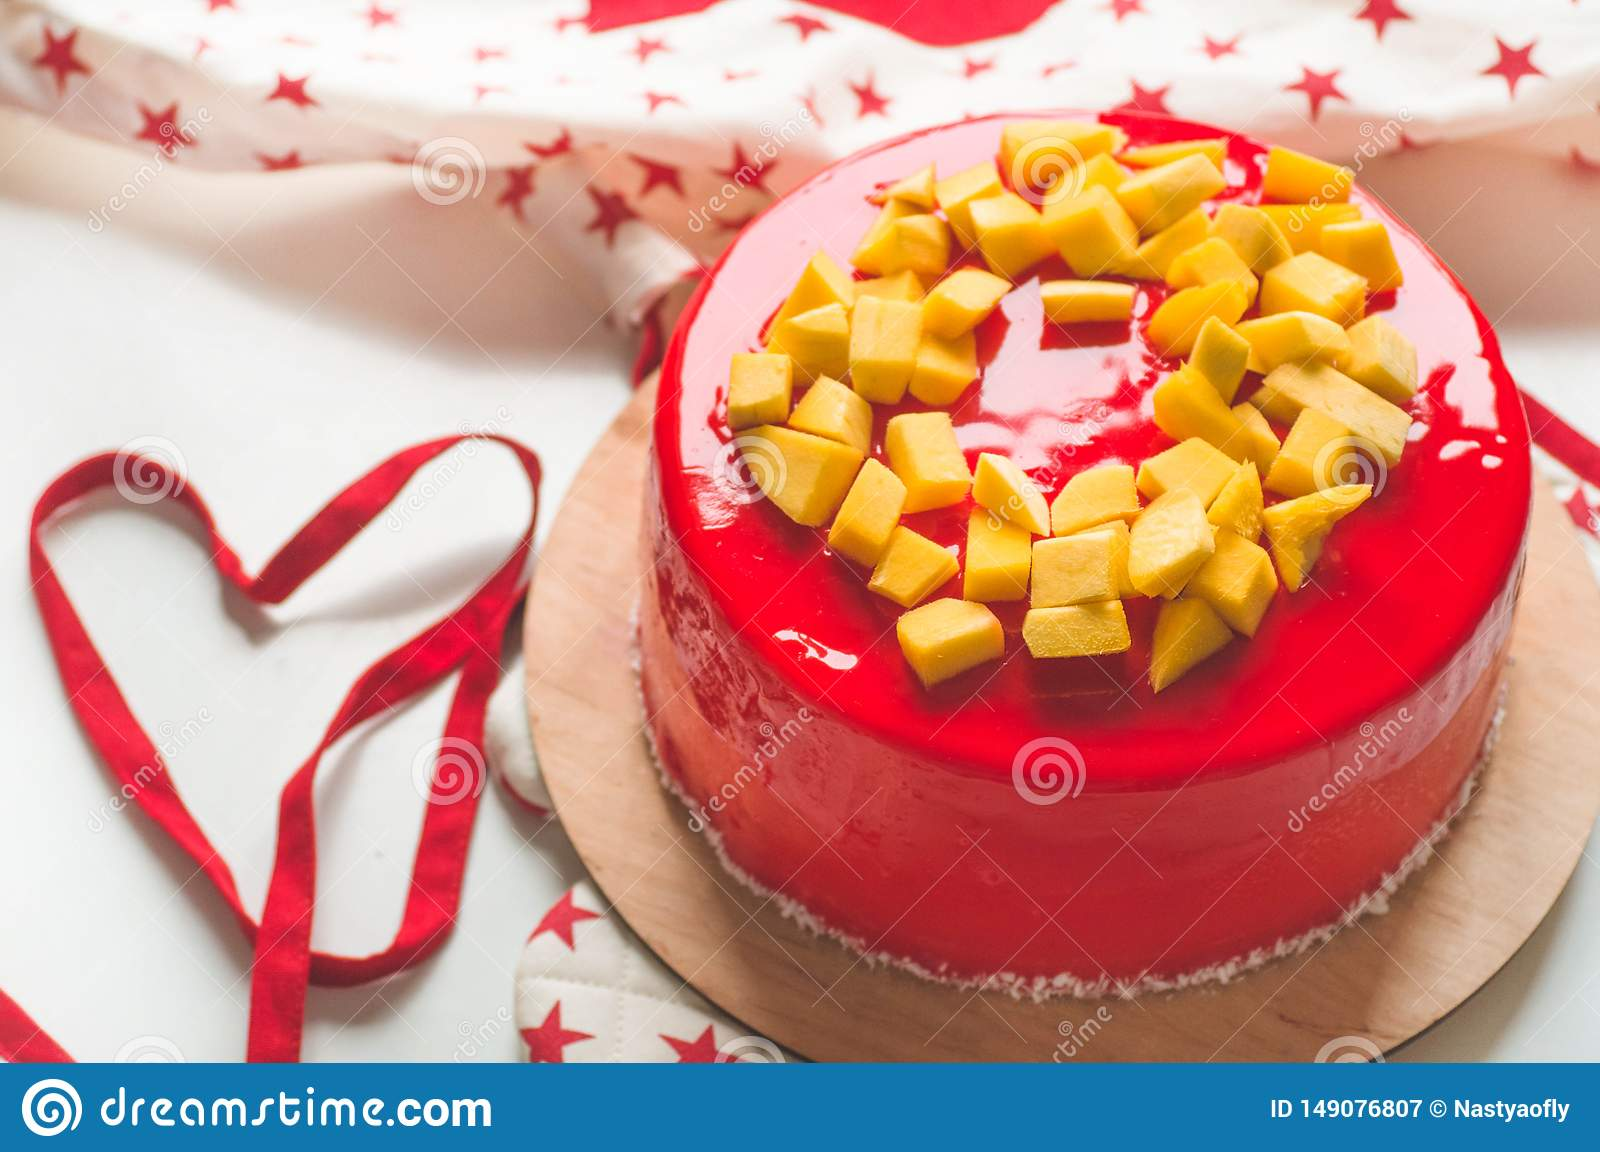 Strange Birthday Cake With One Candle And Red Frosting National Bakery Funny Birthday Cards Online Benoljebrpdamsfinfo